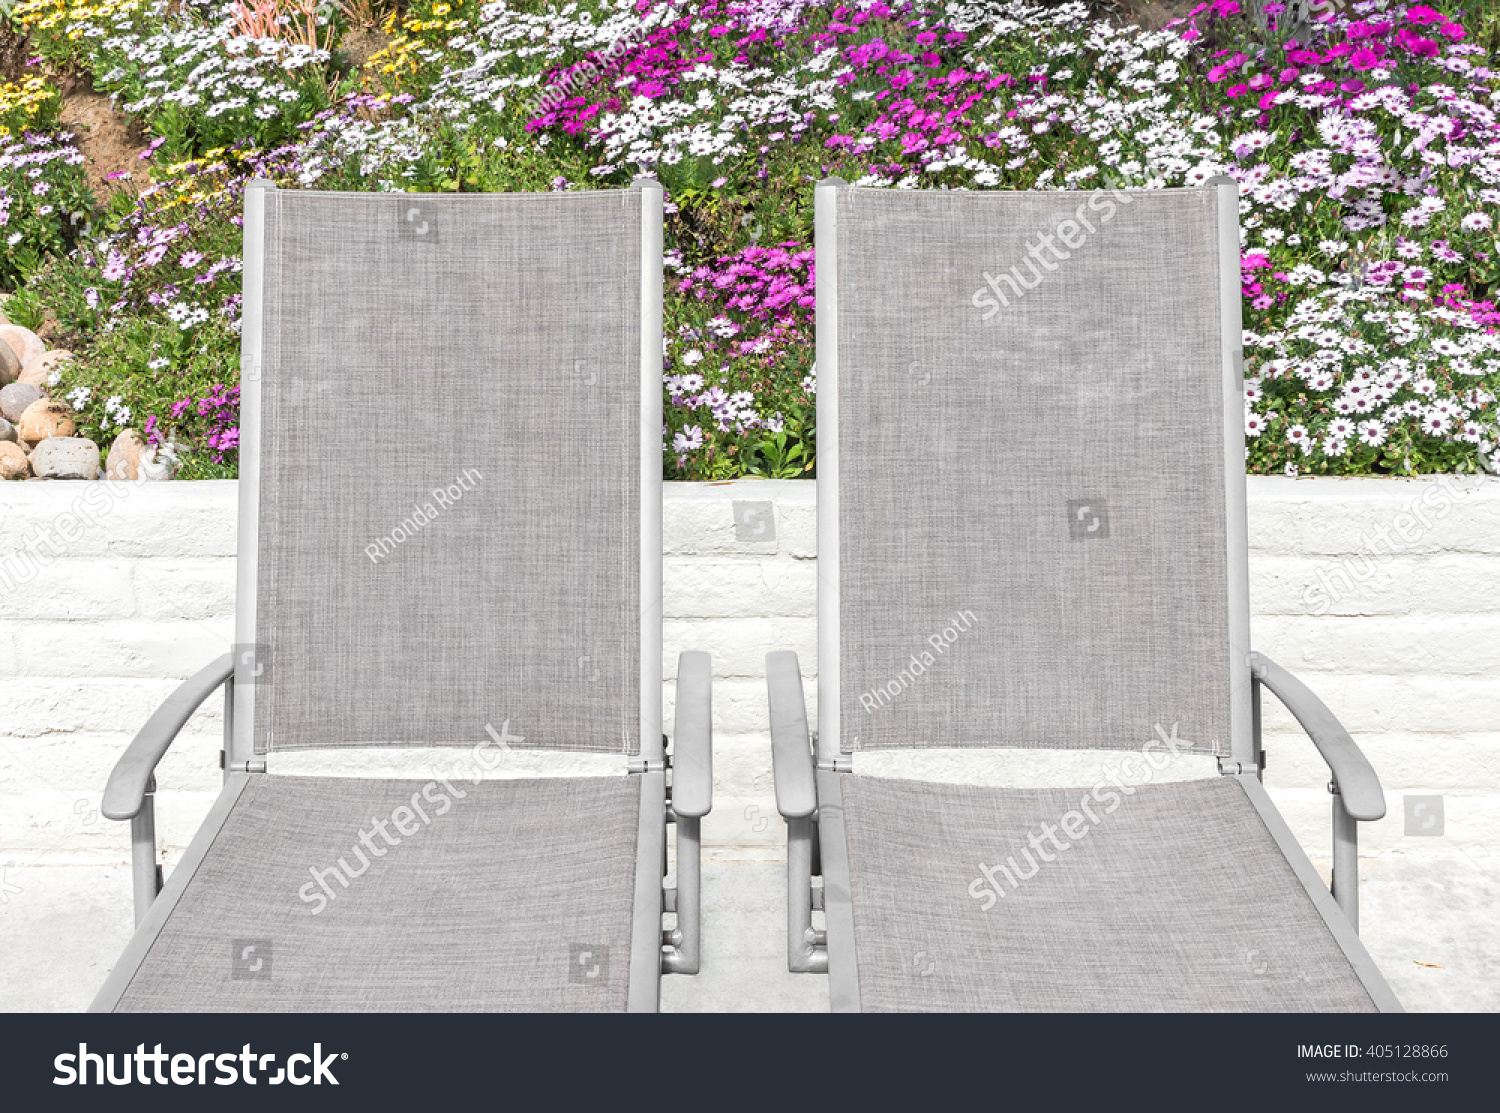 Miraculous Two Outdoor Lounge Chair Recliners Colorful Stock Photo Caraccident5 Cool Chair Designs And Ideas Caraccident5Info